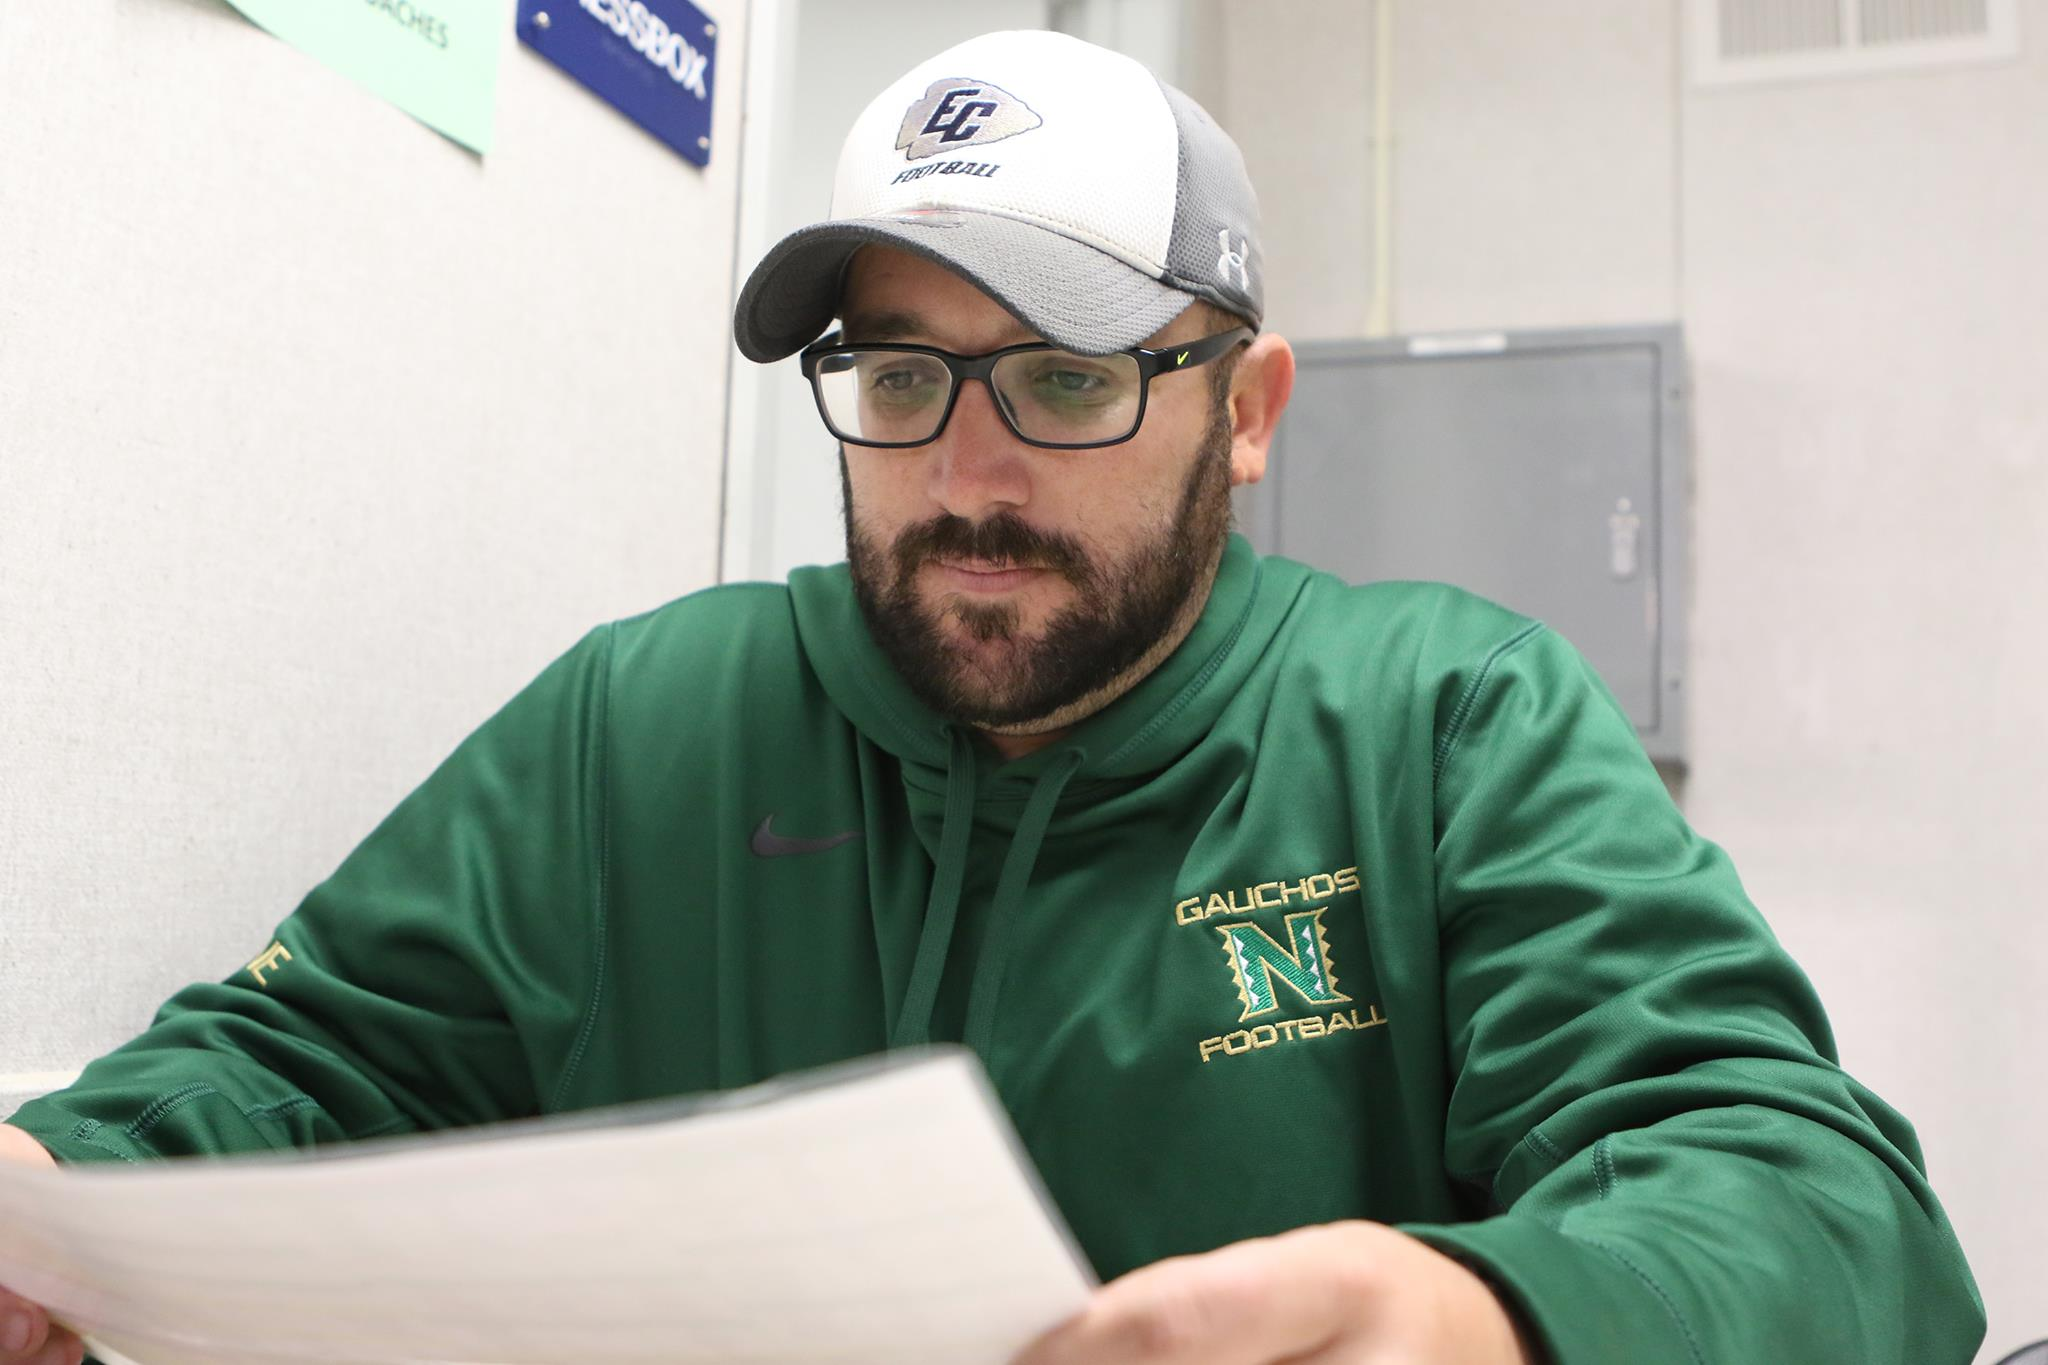 New El Camino offensive coordinator brings championship pedigree to the football program